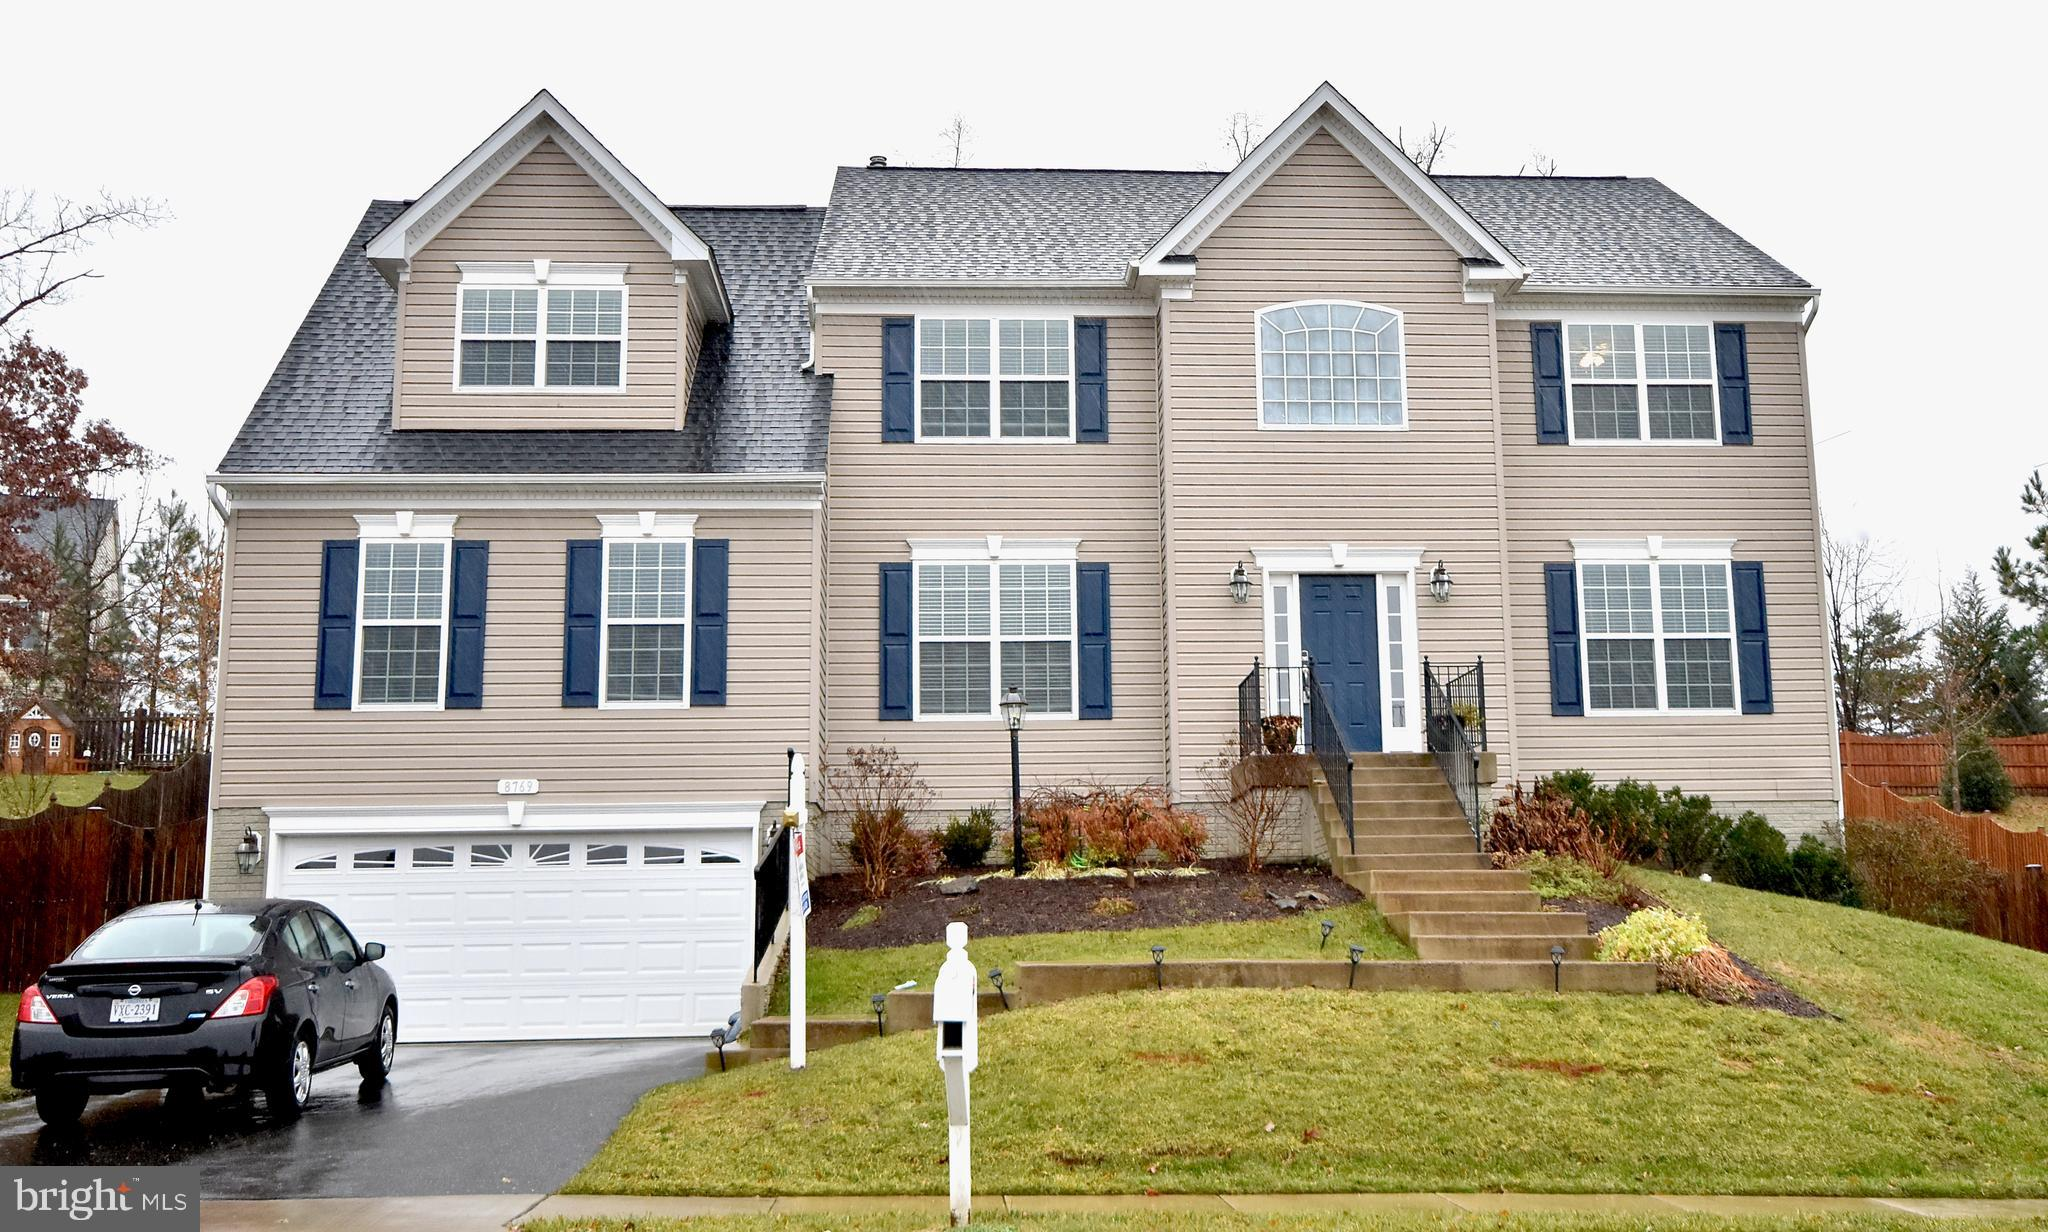 Beautiful home with over 5,000 finished square feet on 3 levels. 5 Bedrooms and 5 Bathrooms! Main le